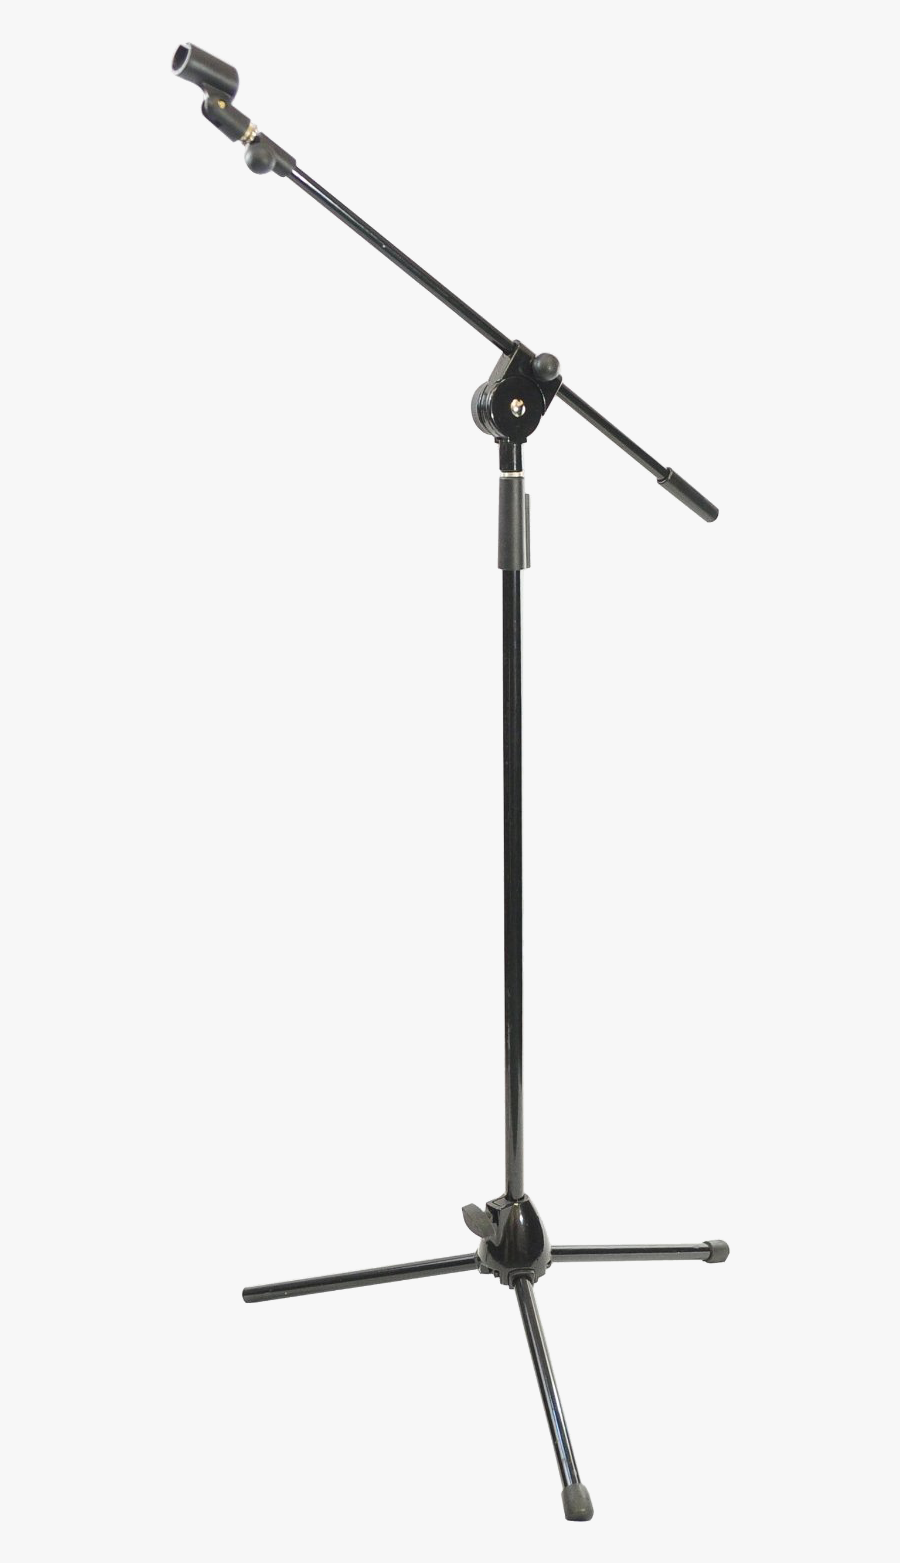 Microphone Stands Audio Shock Mount Recording Studio - Microphone Stand Transparent Background, Transparent Clipart